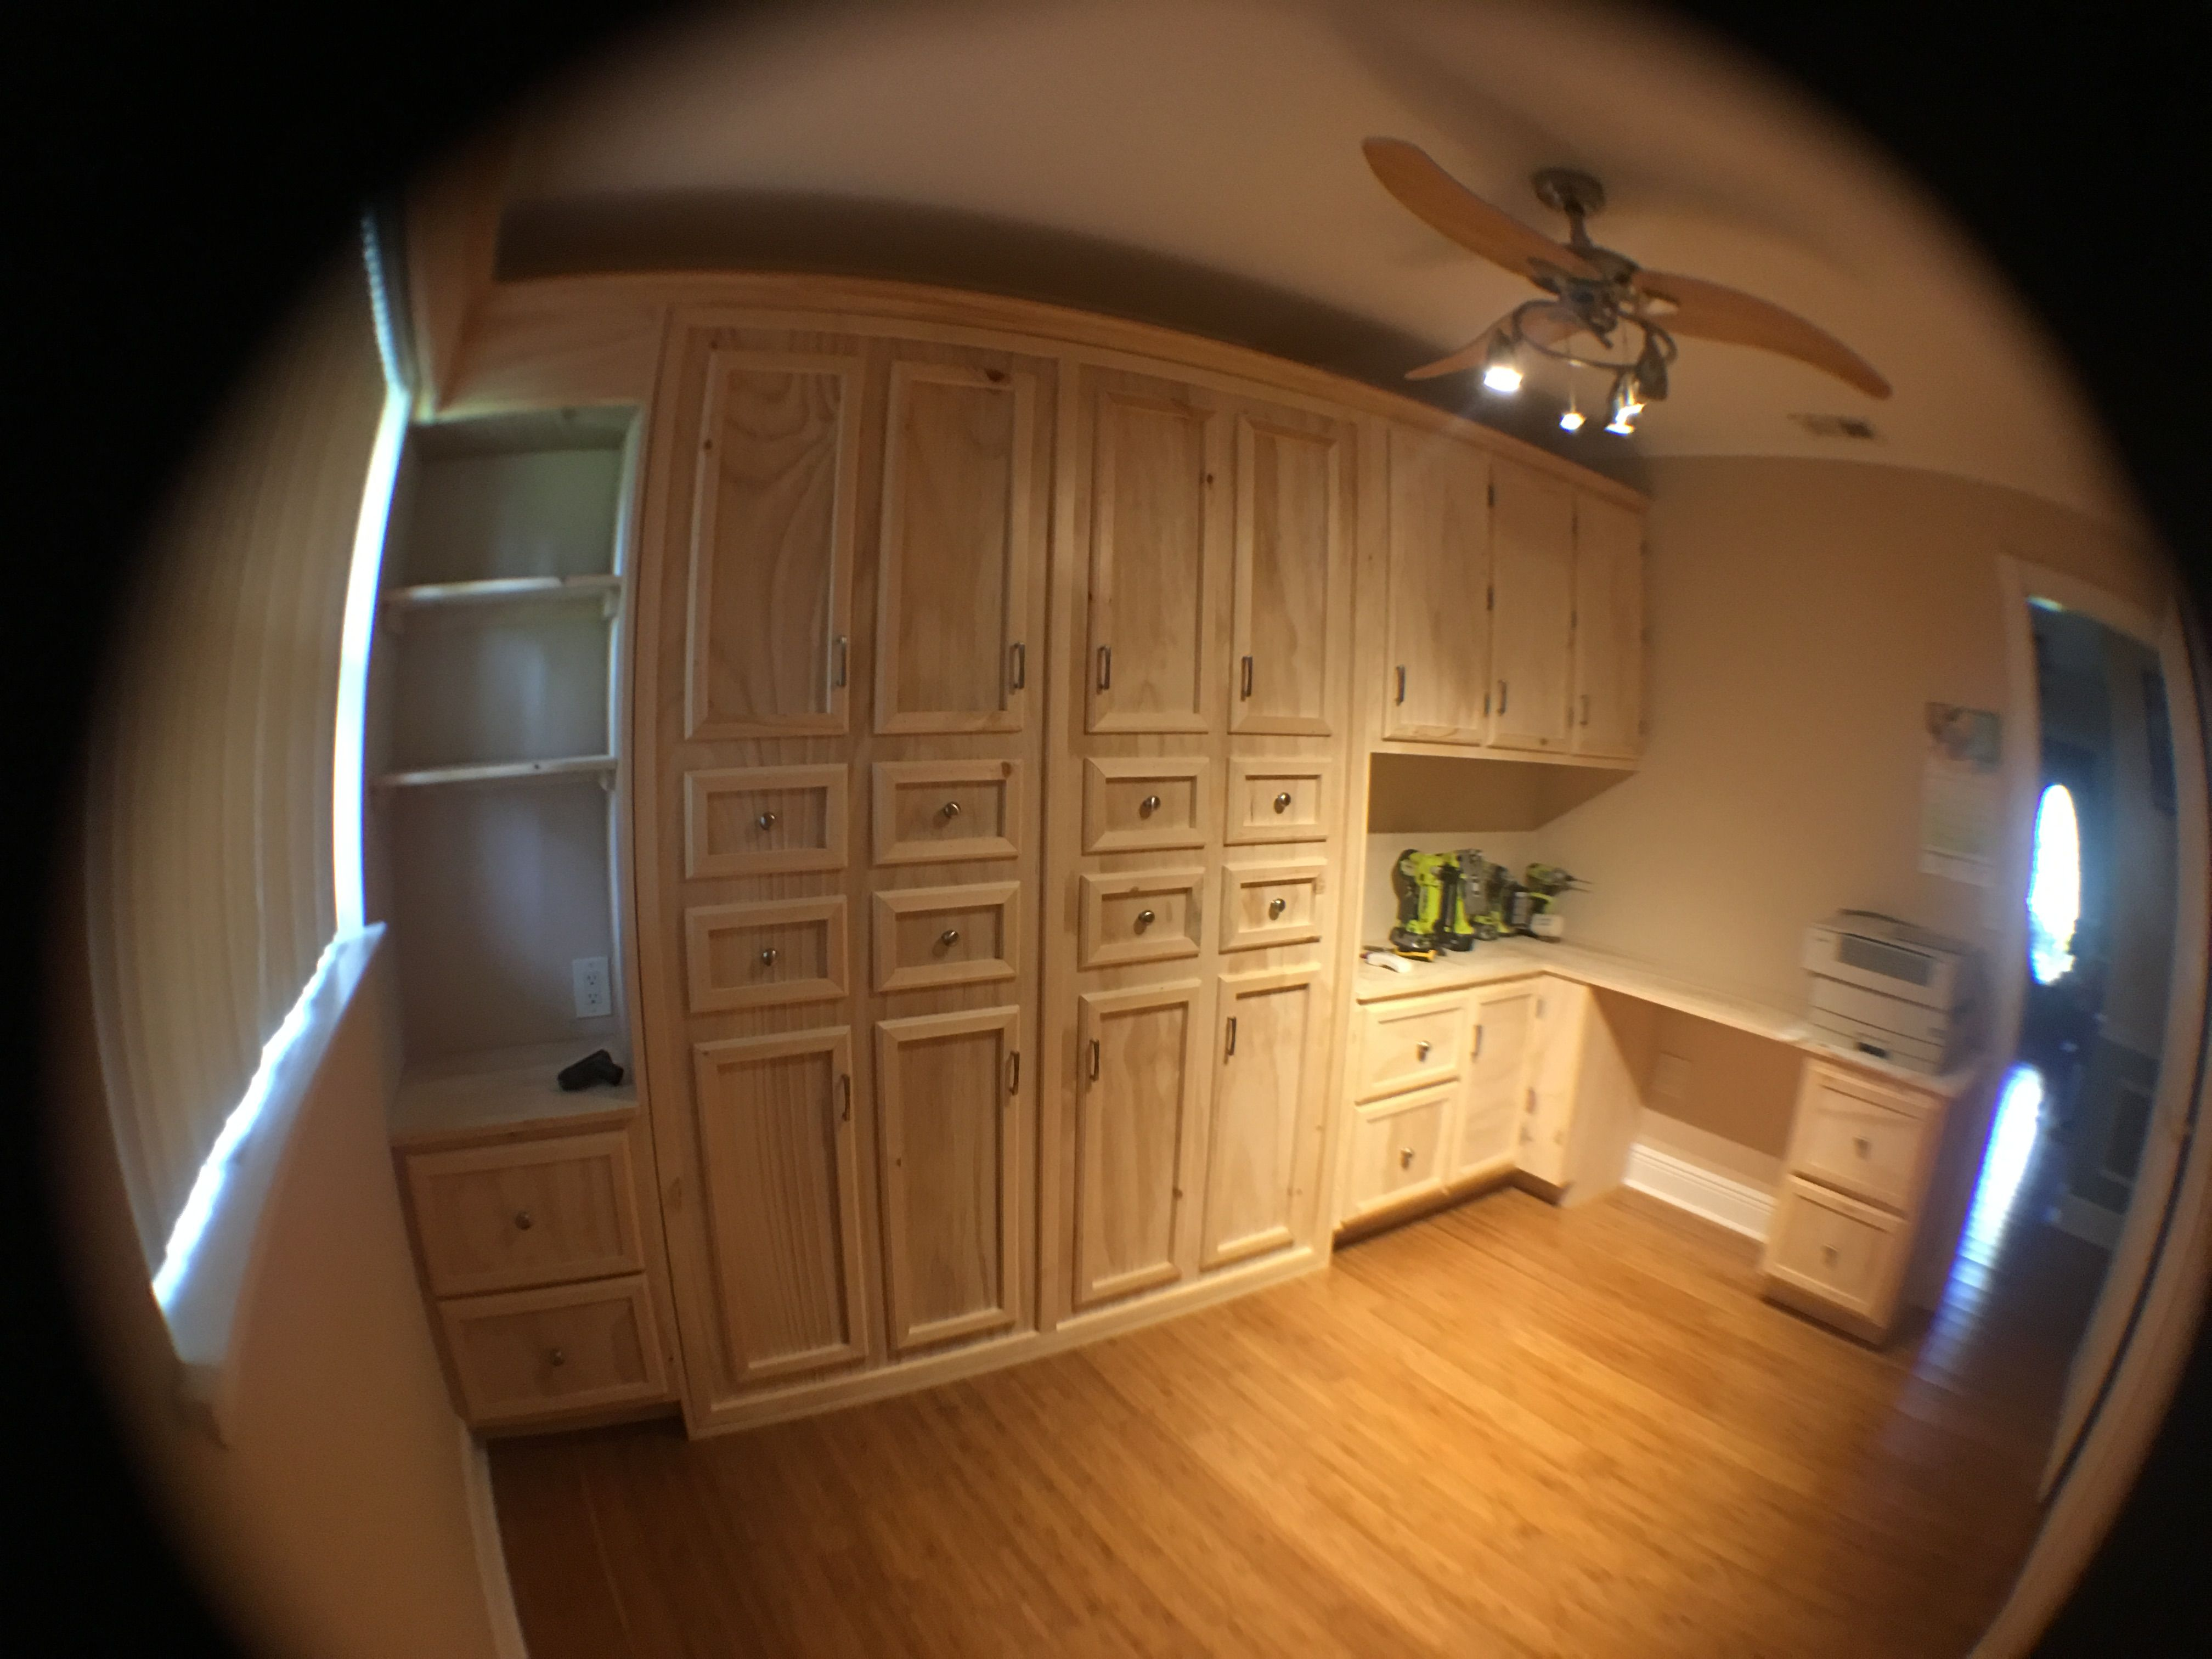 Murphy bed/home office I built in my house. House